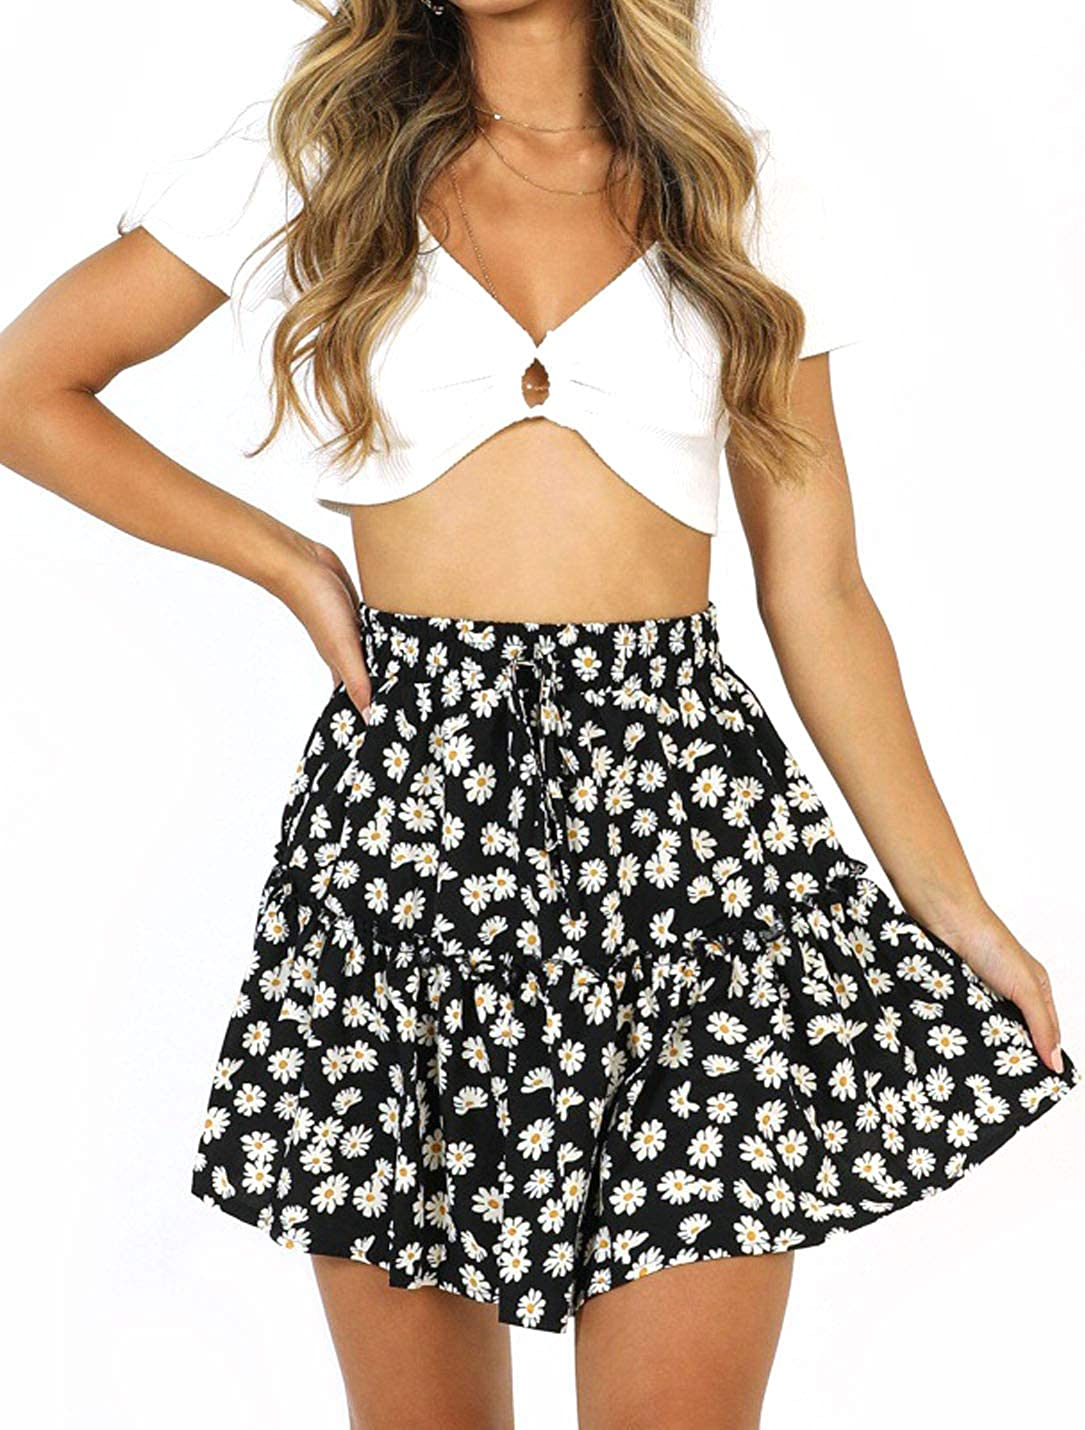 Flygo Women's High Waisted Ruffle Floral Flare Pleated Swing Mini Skater Skirt with Drawstring